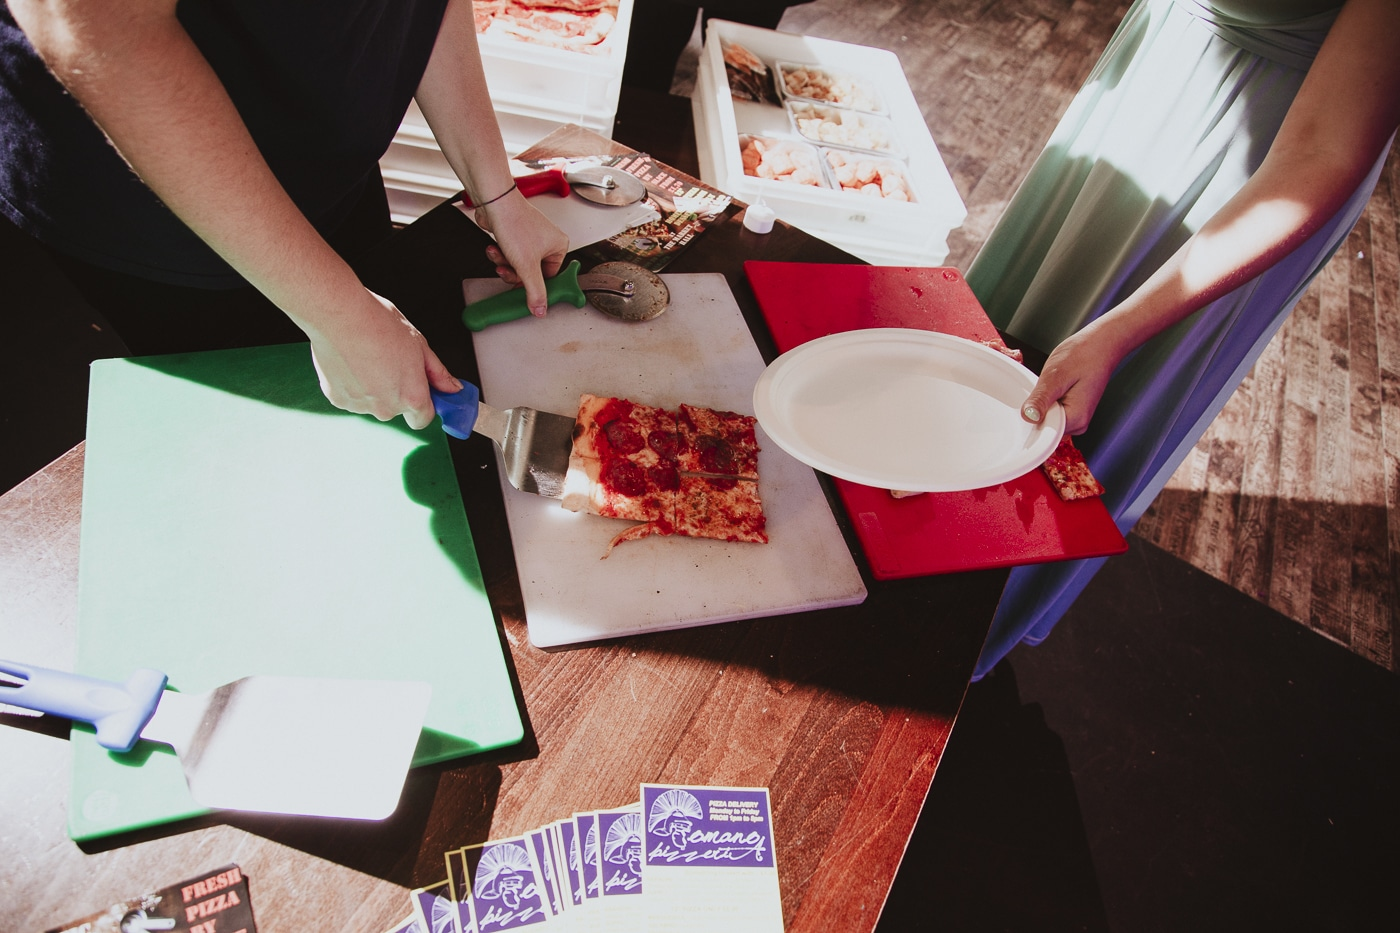 Serving pizza at wedding by Joshua Wyborn Photographic